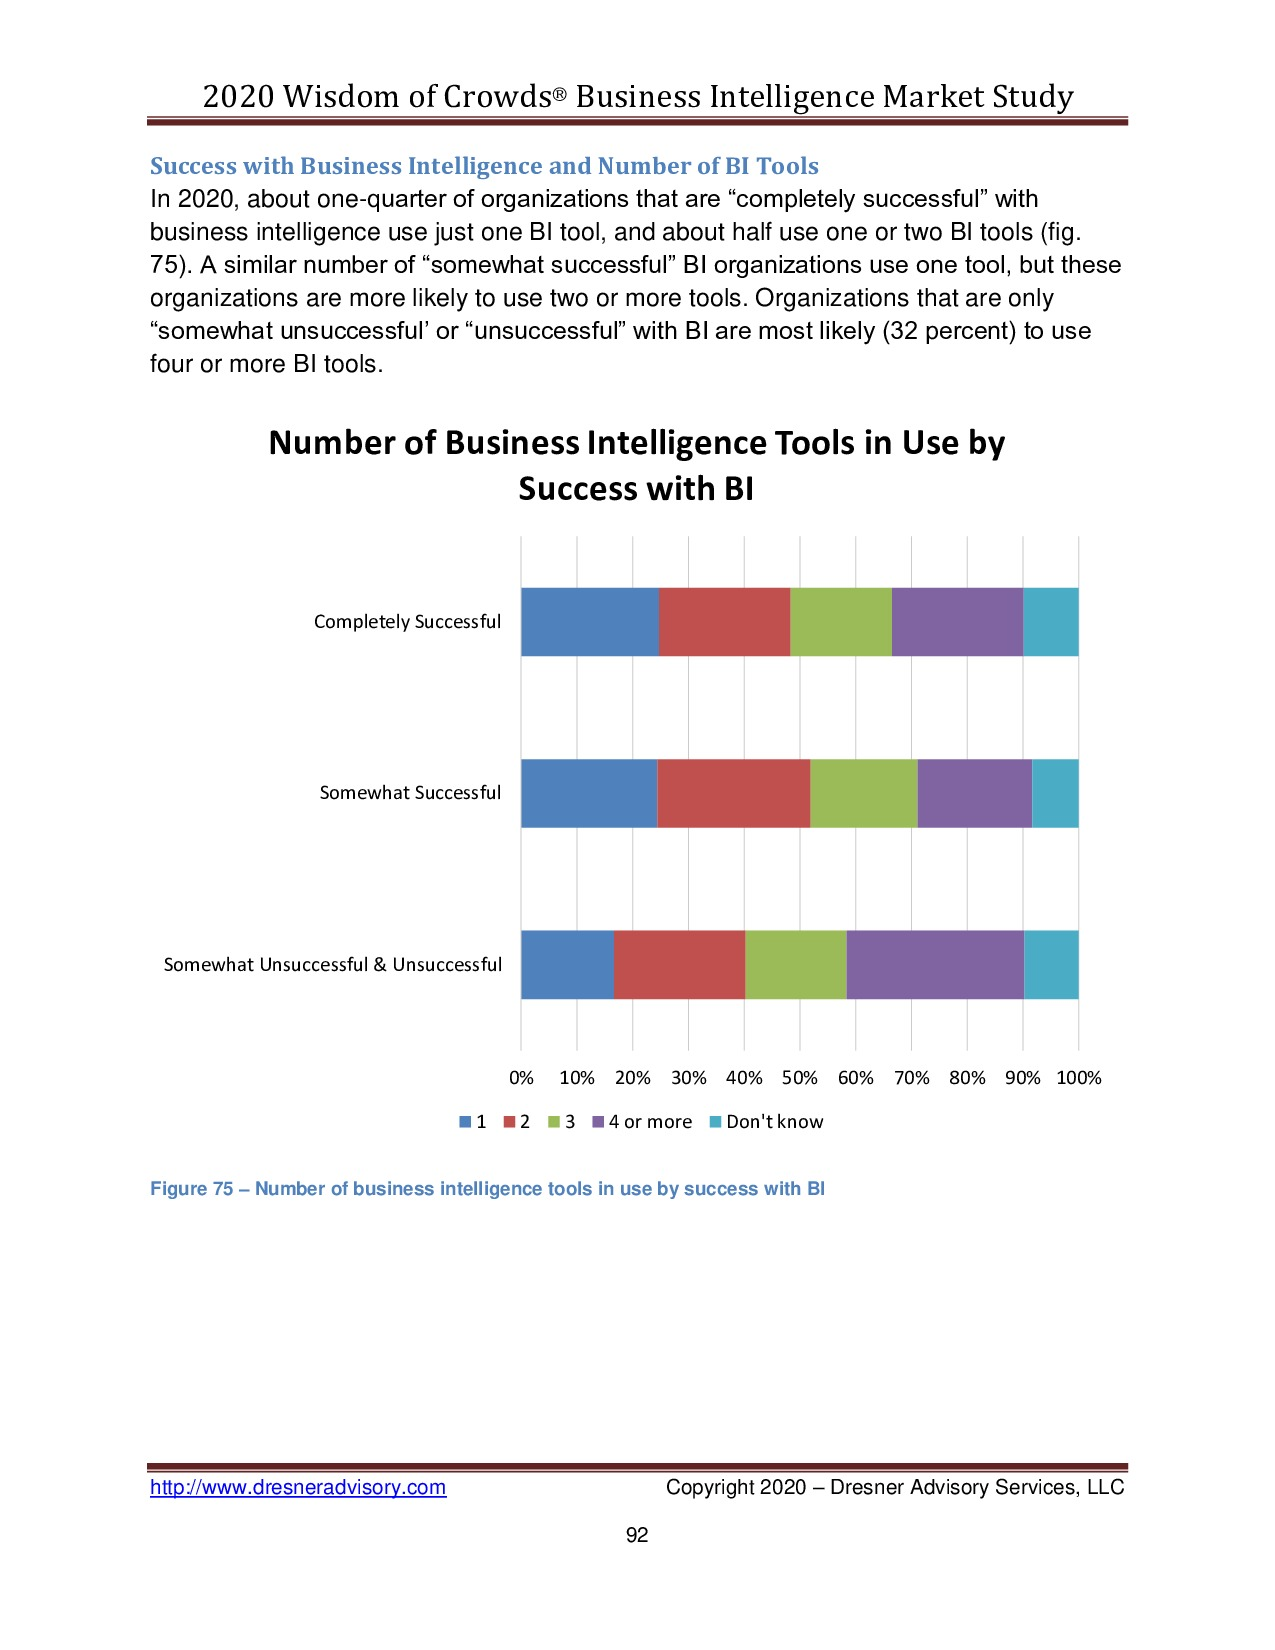 Dresner Advisory – Business Intelligence Marktstudie 2020 | Page 92